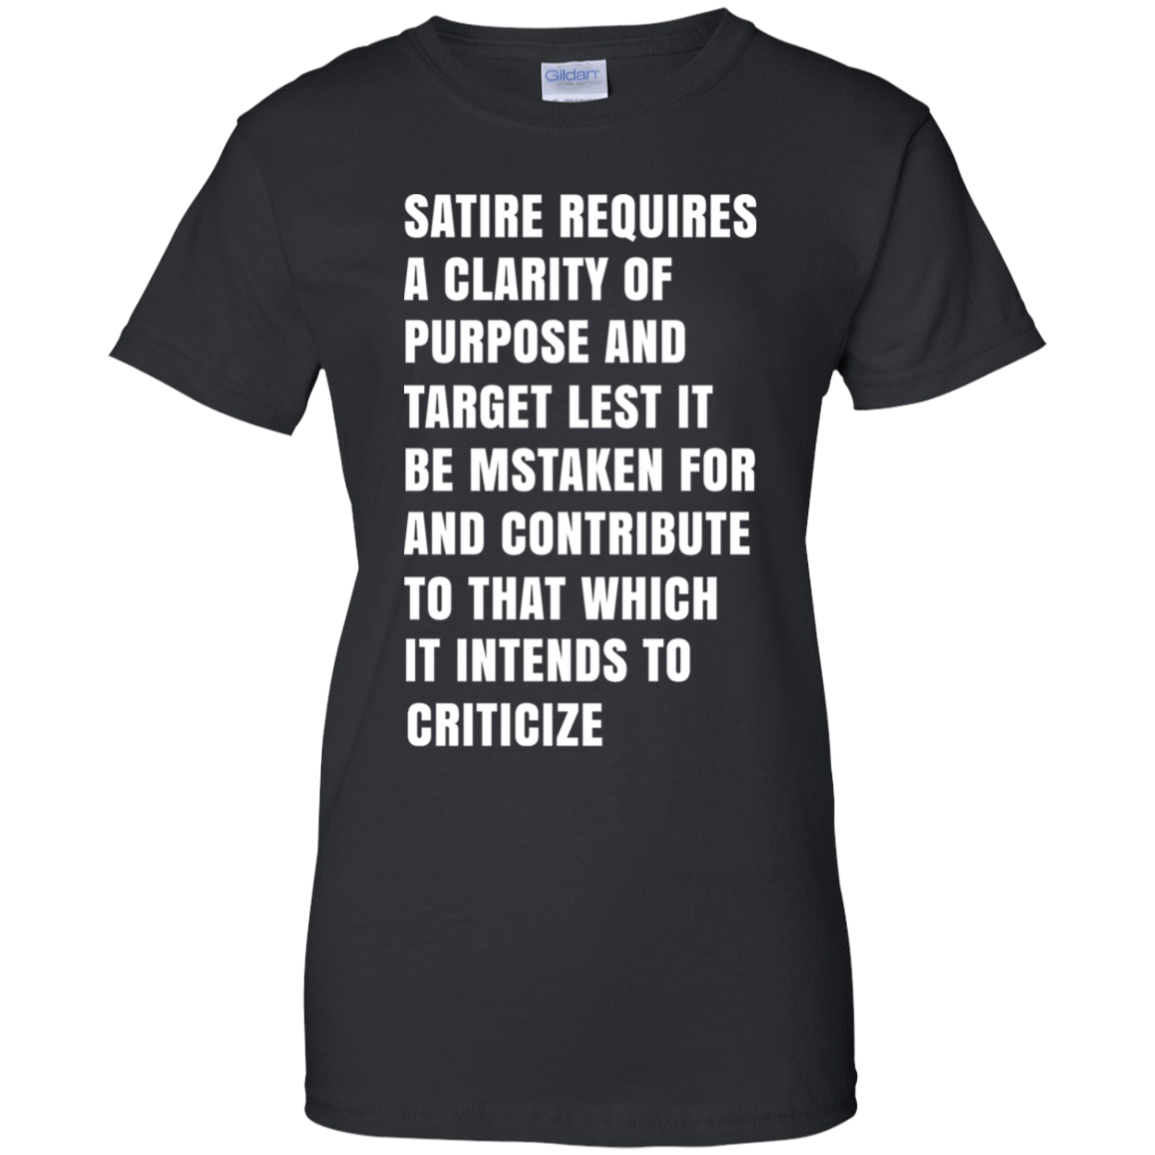 Satire Requires A Clarity Of Purpose And Target 939-9248-73180641-44695 - Tee Ript